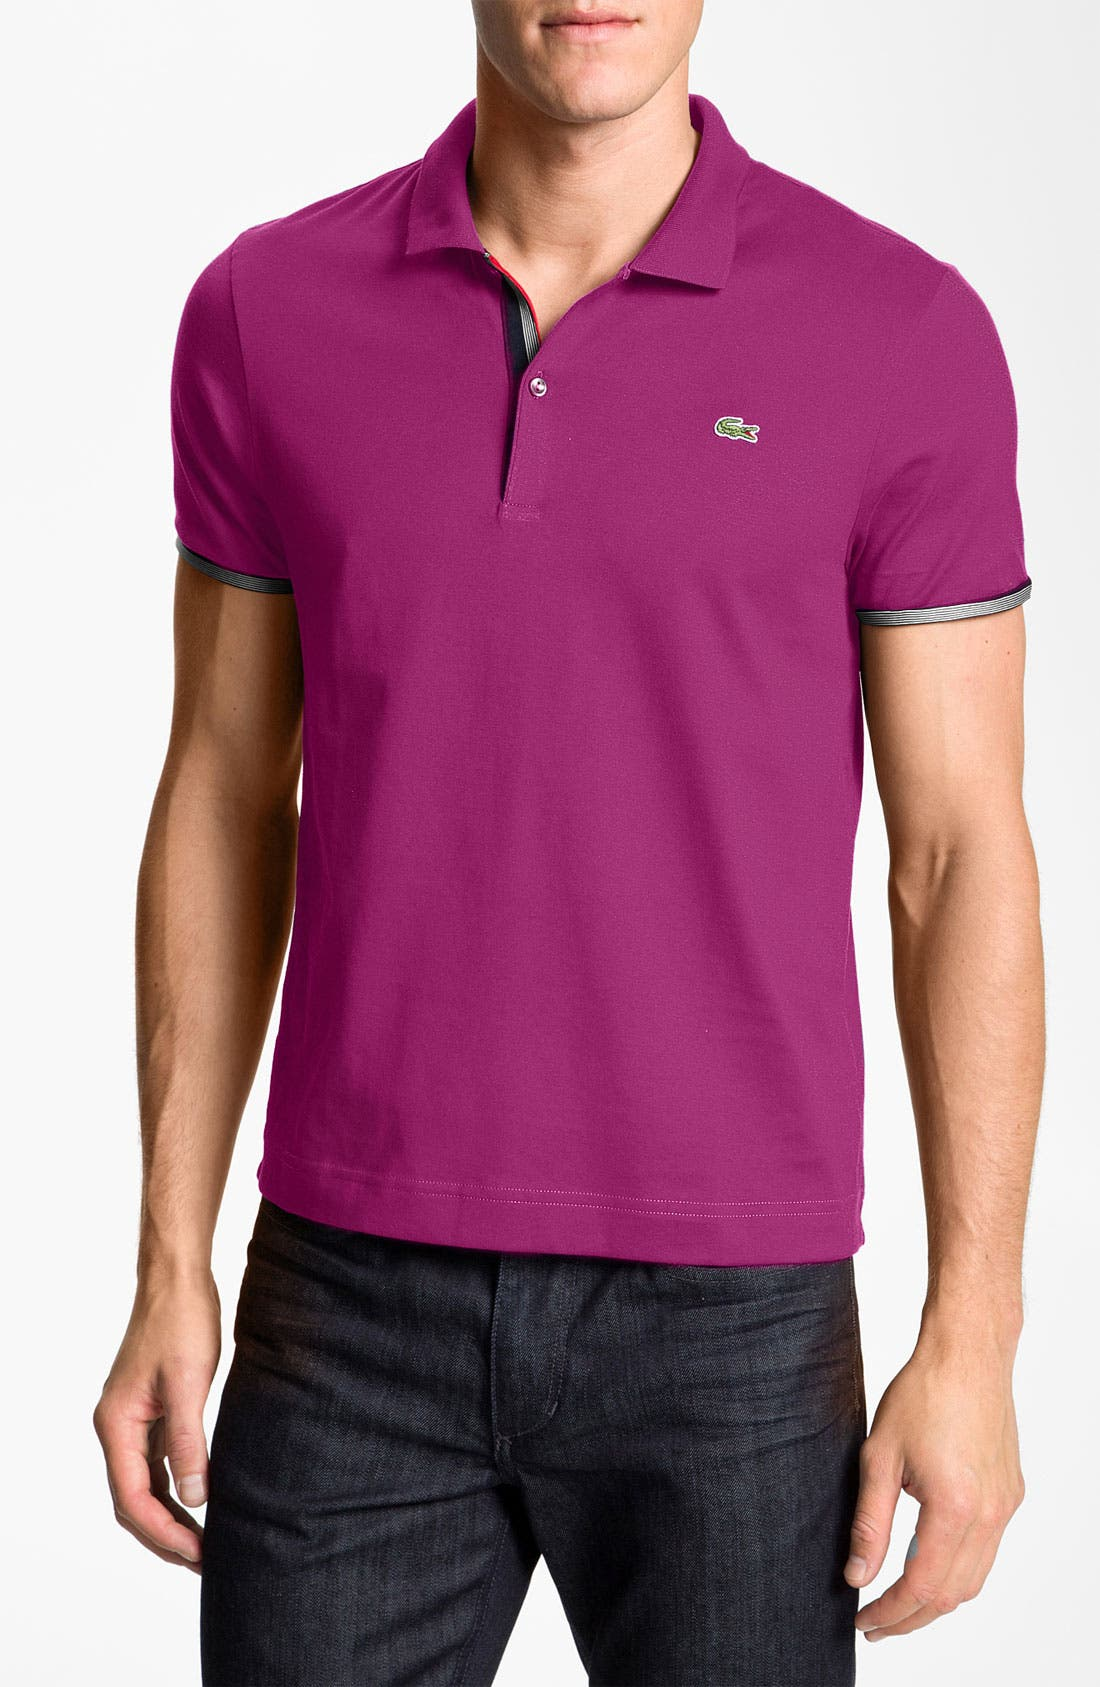 Main Image - Lacoste Trim Fit Jersey Polo